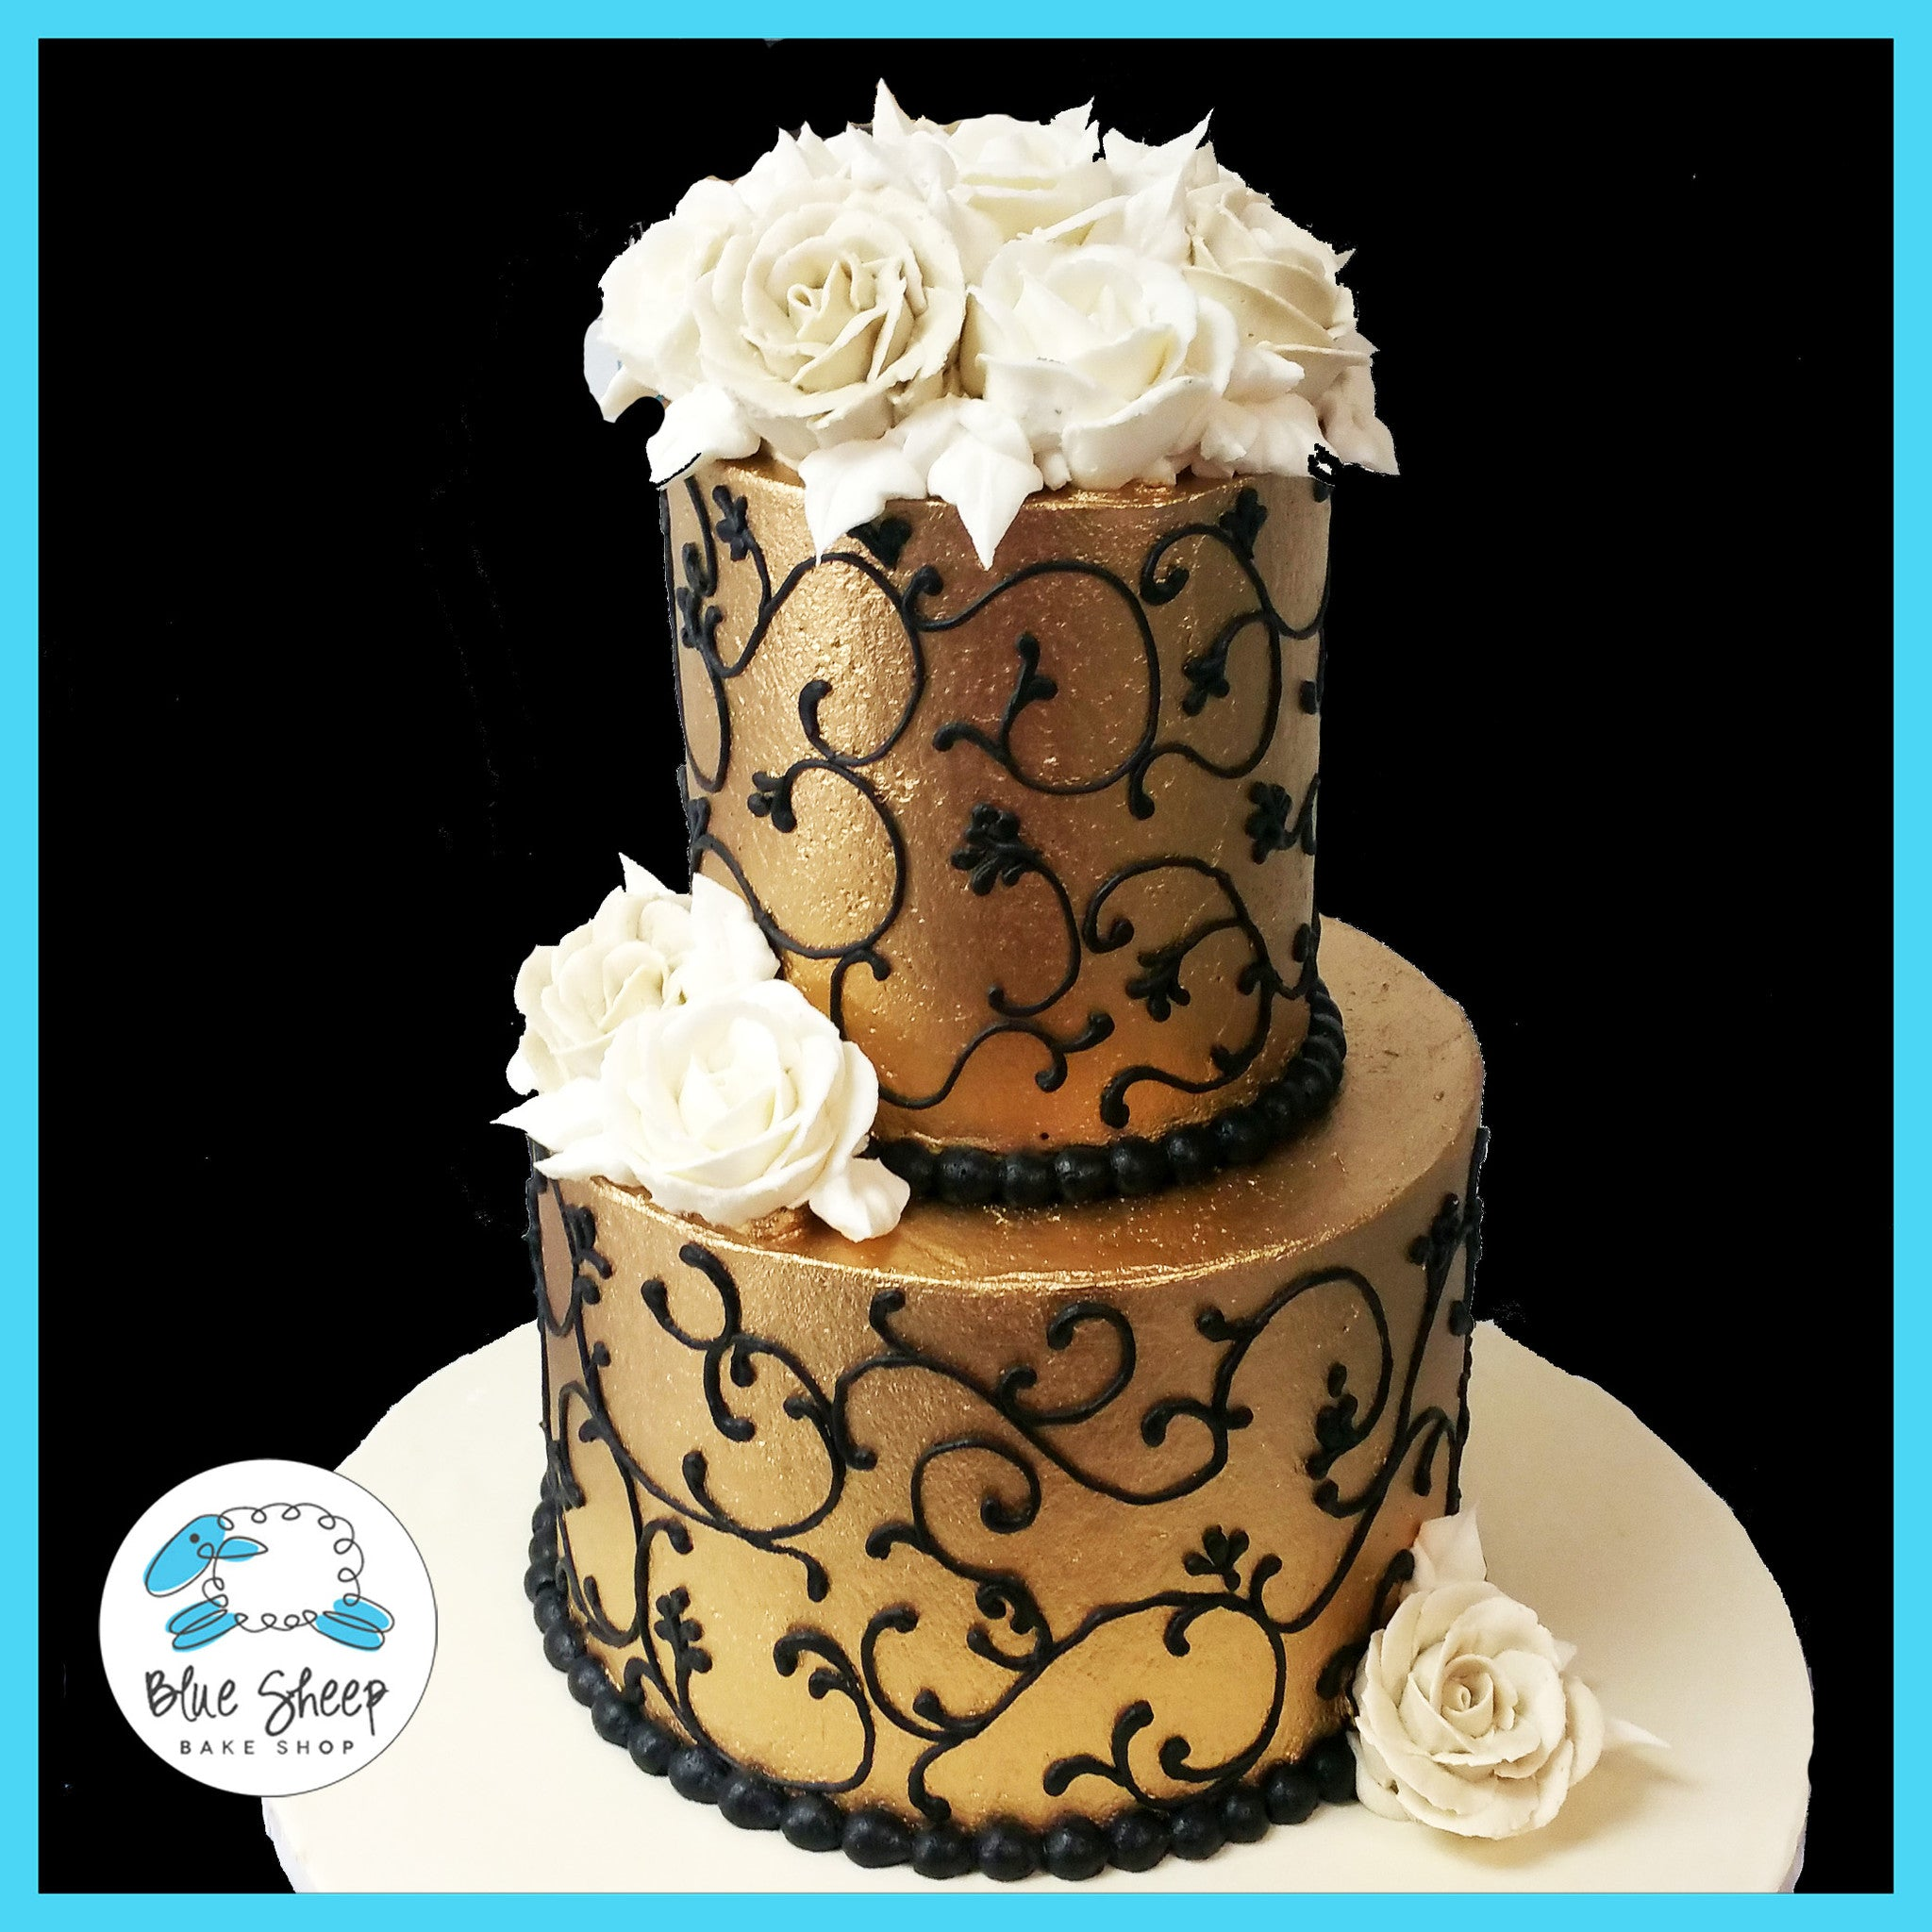 Remarkable Gold And Black Buttercream Birthday Cake Blue Sheep Bake Shop Funny Birthday Cards Online Alyptdamsfinfo